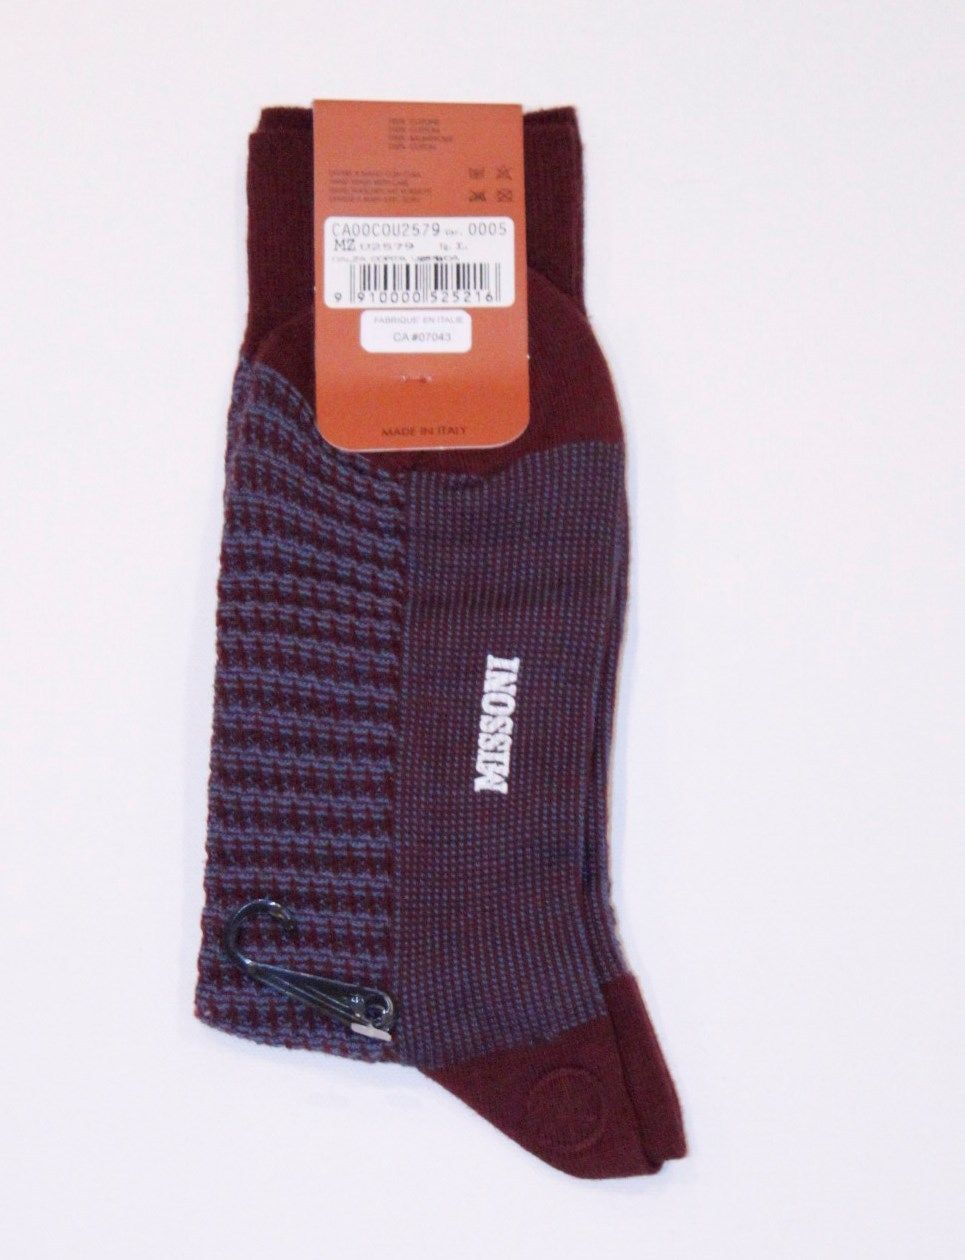 MISSONI MADE IN ITALY DRESS SOCKS BURGUNDY BLUE 100% COTTON LOGO LARGE FREE SHIP